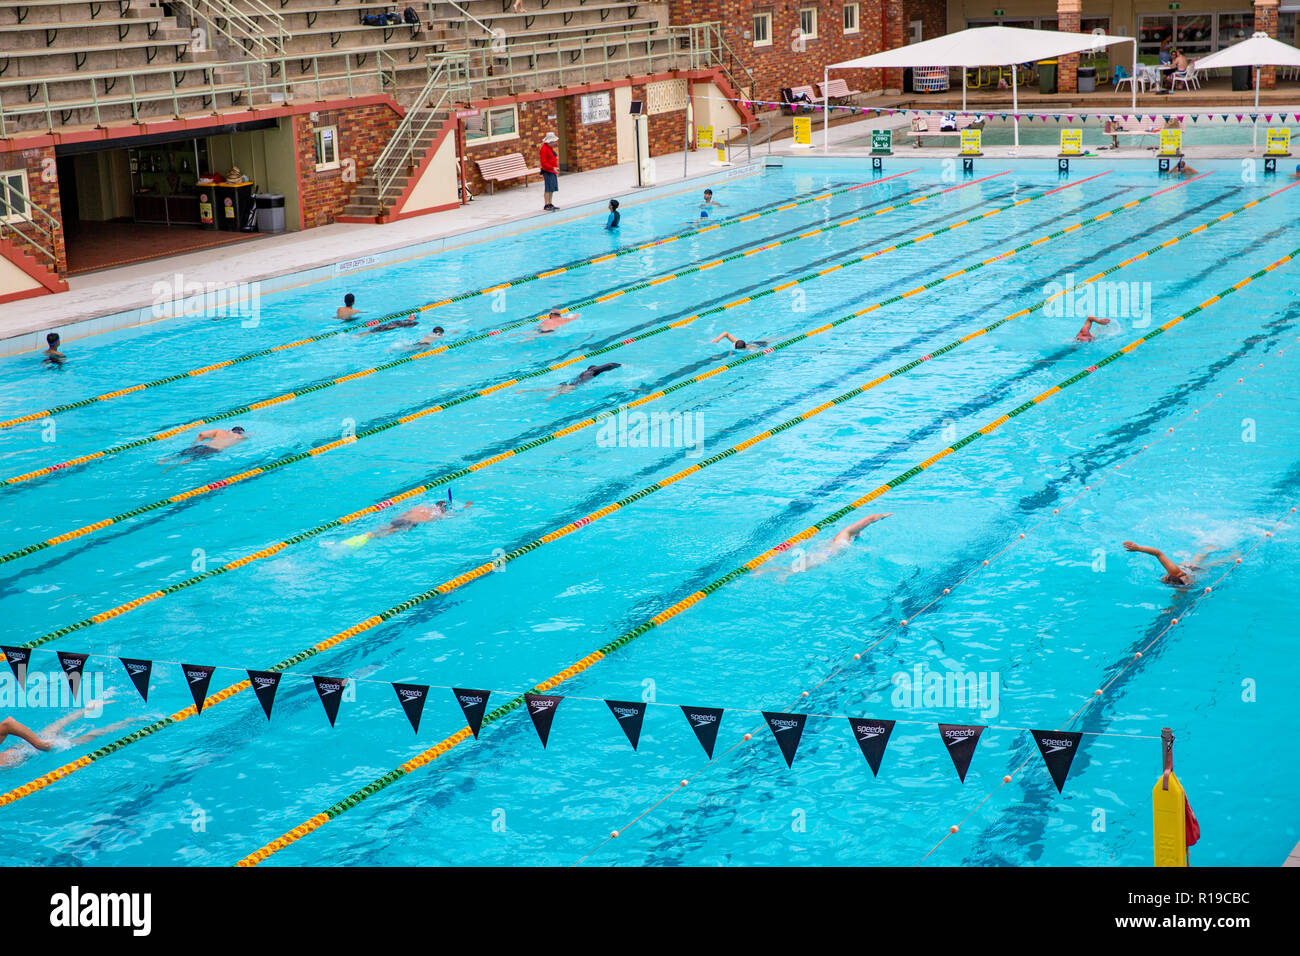 People swimming in the public swimming pool at Milsons Point